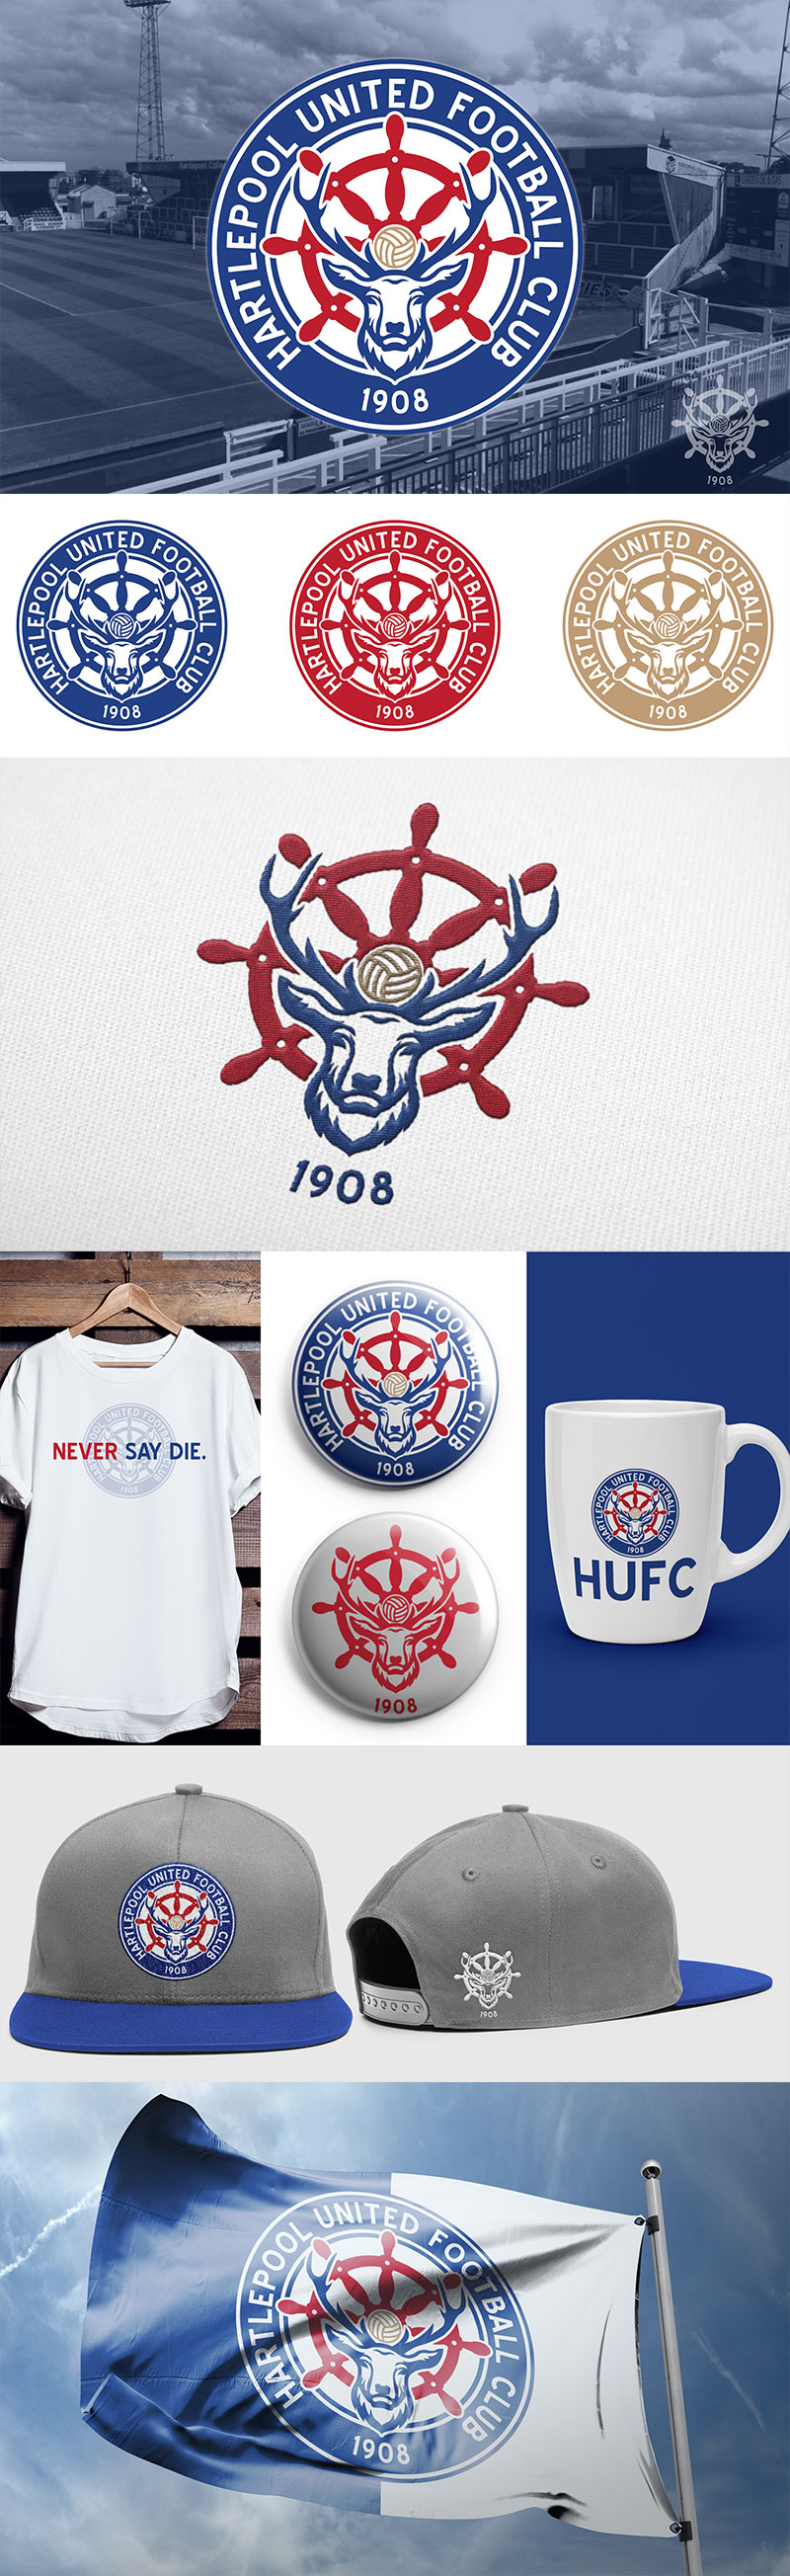 Football Club Brand Designs: Hartlepool United FC - Crest Concept by Nick Budrewicz